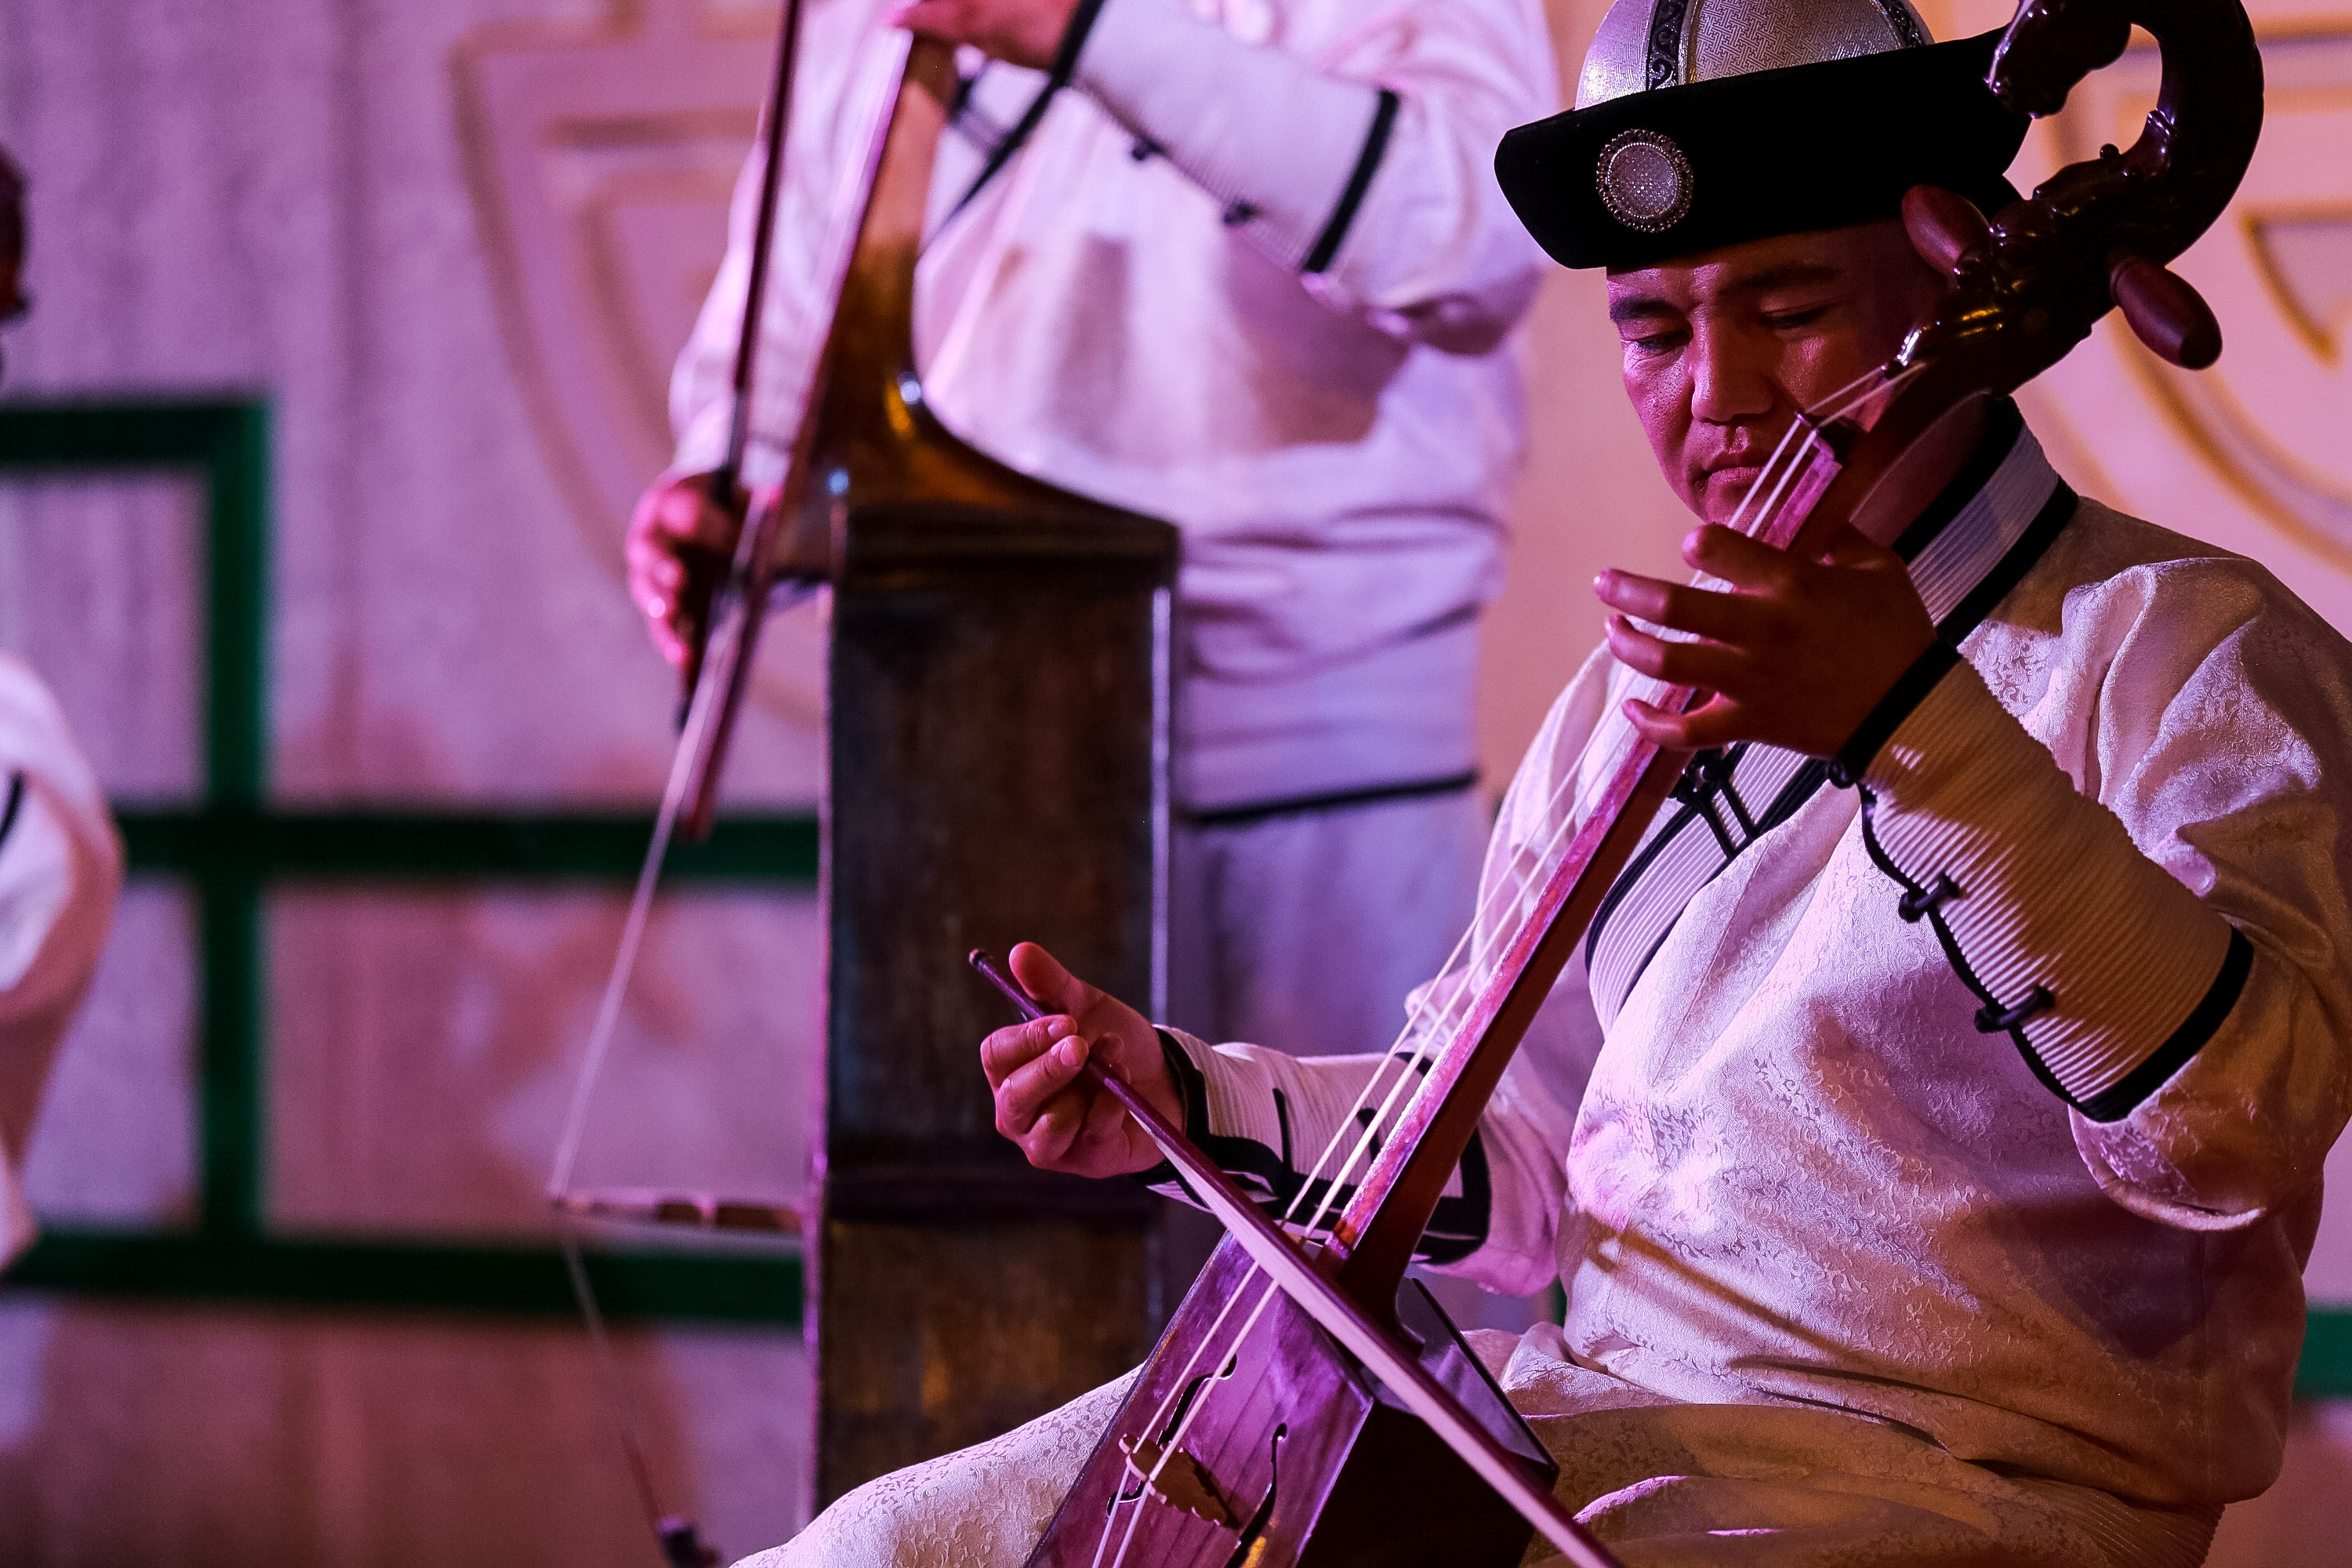 musician plays morin khuur, or horse-head fiddle, in Mongolia